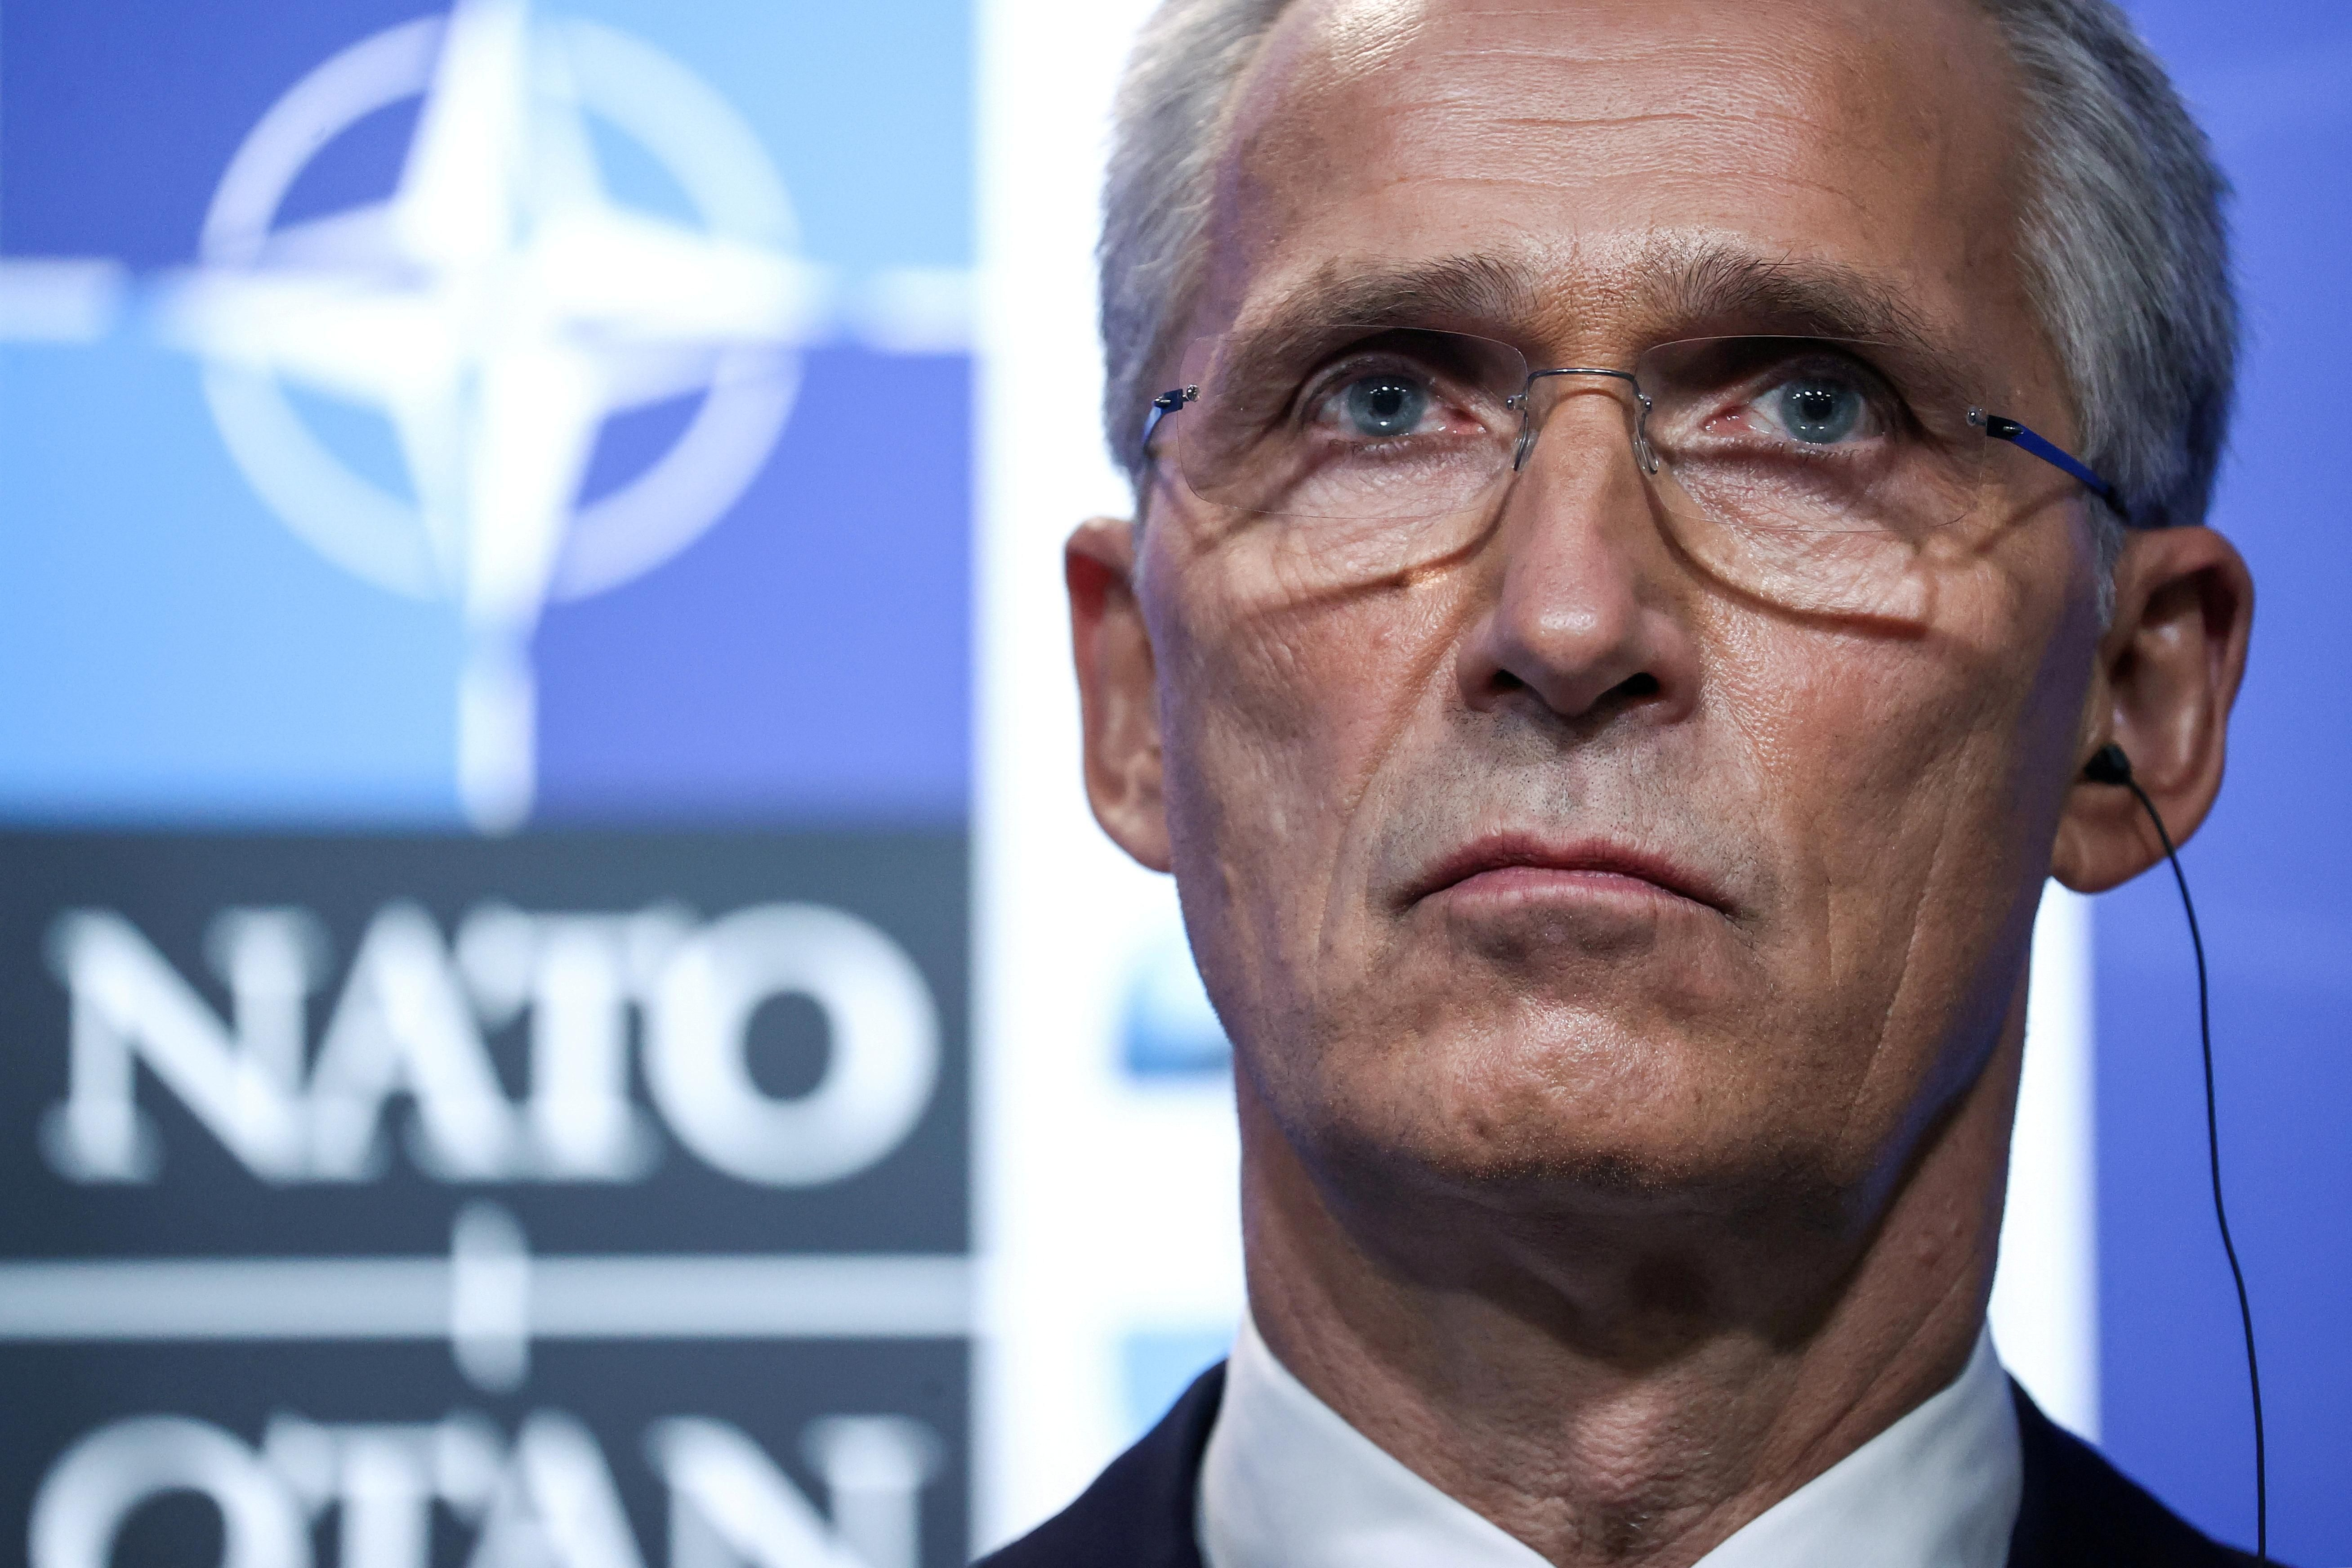 NATO Secretary General Jens Stoltenberg holds a news conference during the NATO summit at the Alliance's headquarters, in Brussels, Belgium,